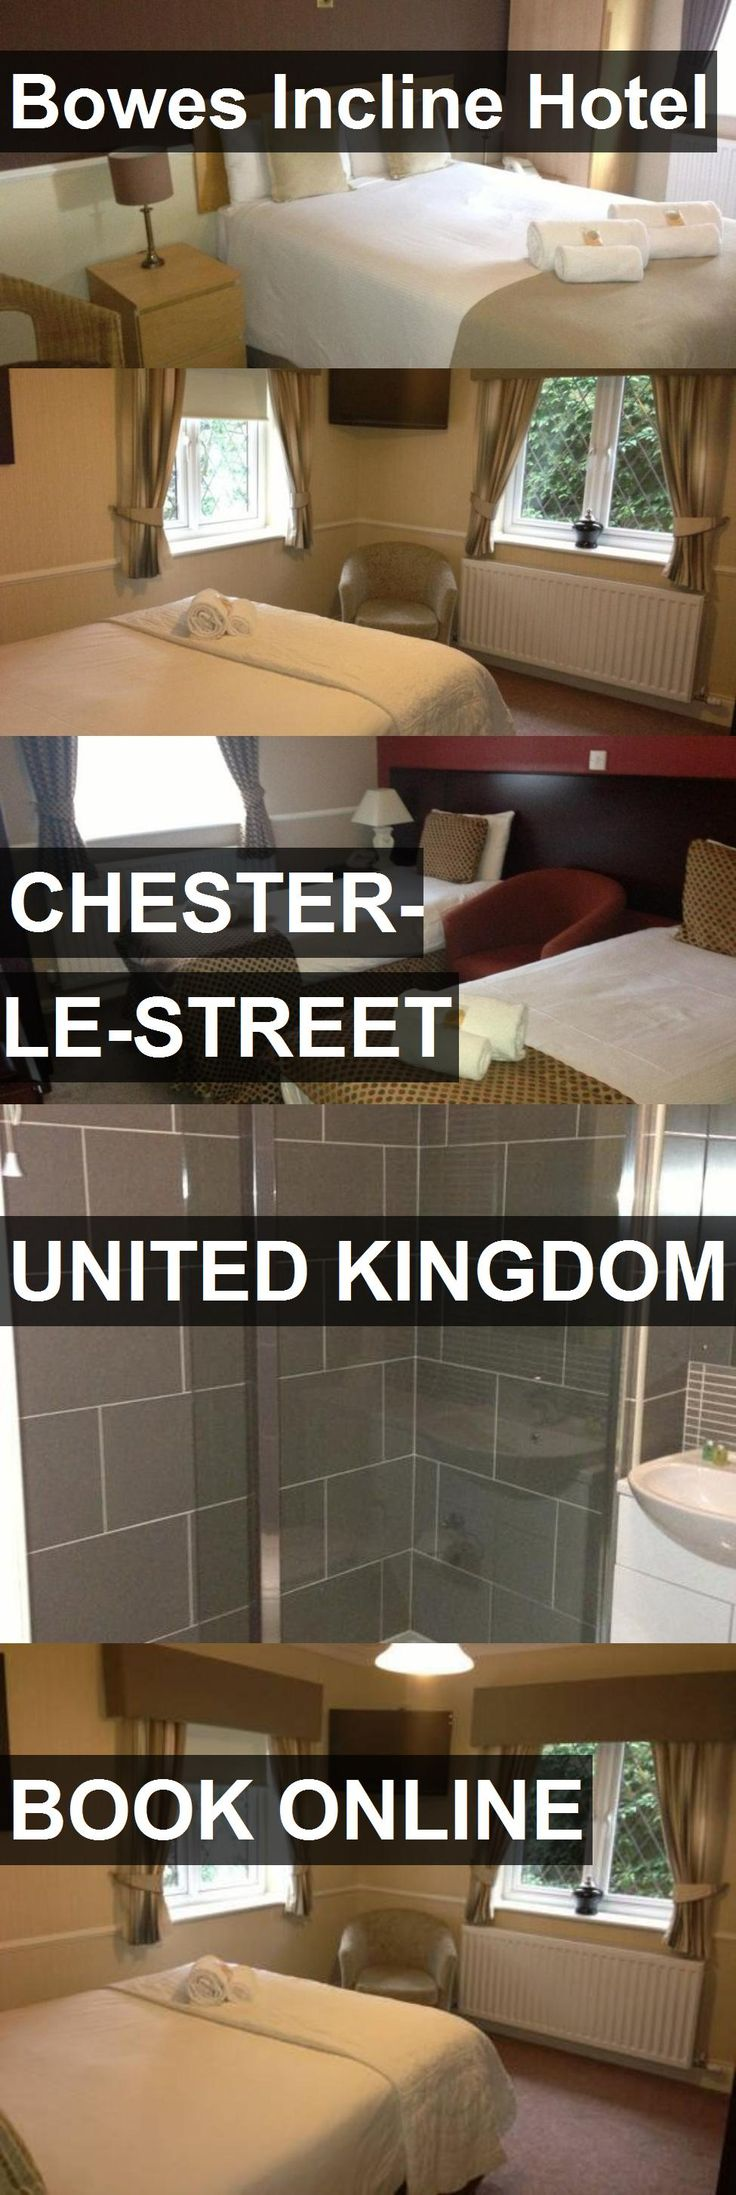 Hotel Bowes Incline Hotel in Chester-le-Street, United Kingdom. For more information, photos, reviews and best prices please follow the link. #UnitedKingdom #Chester-le-Street #BowesInclineHotel #hotel #travel #vacation